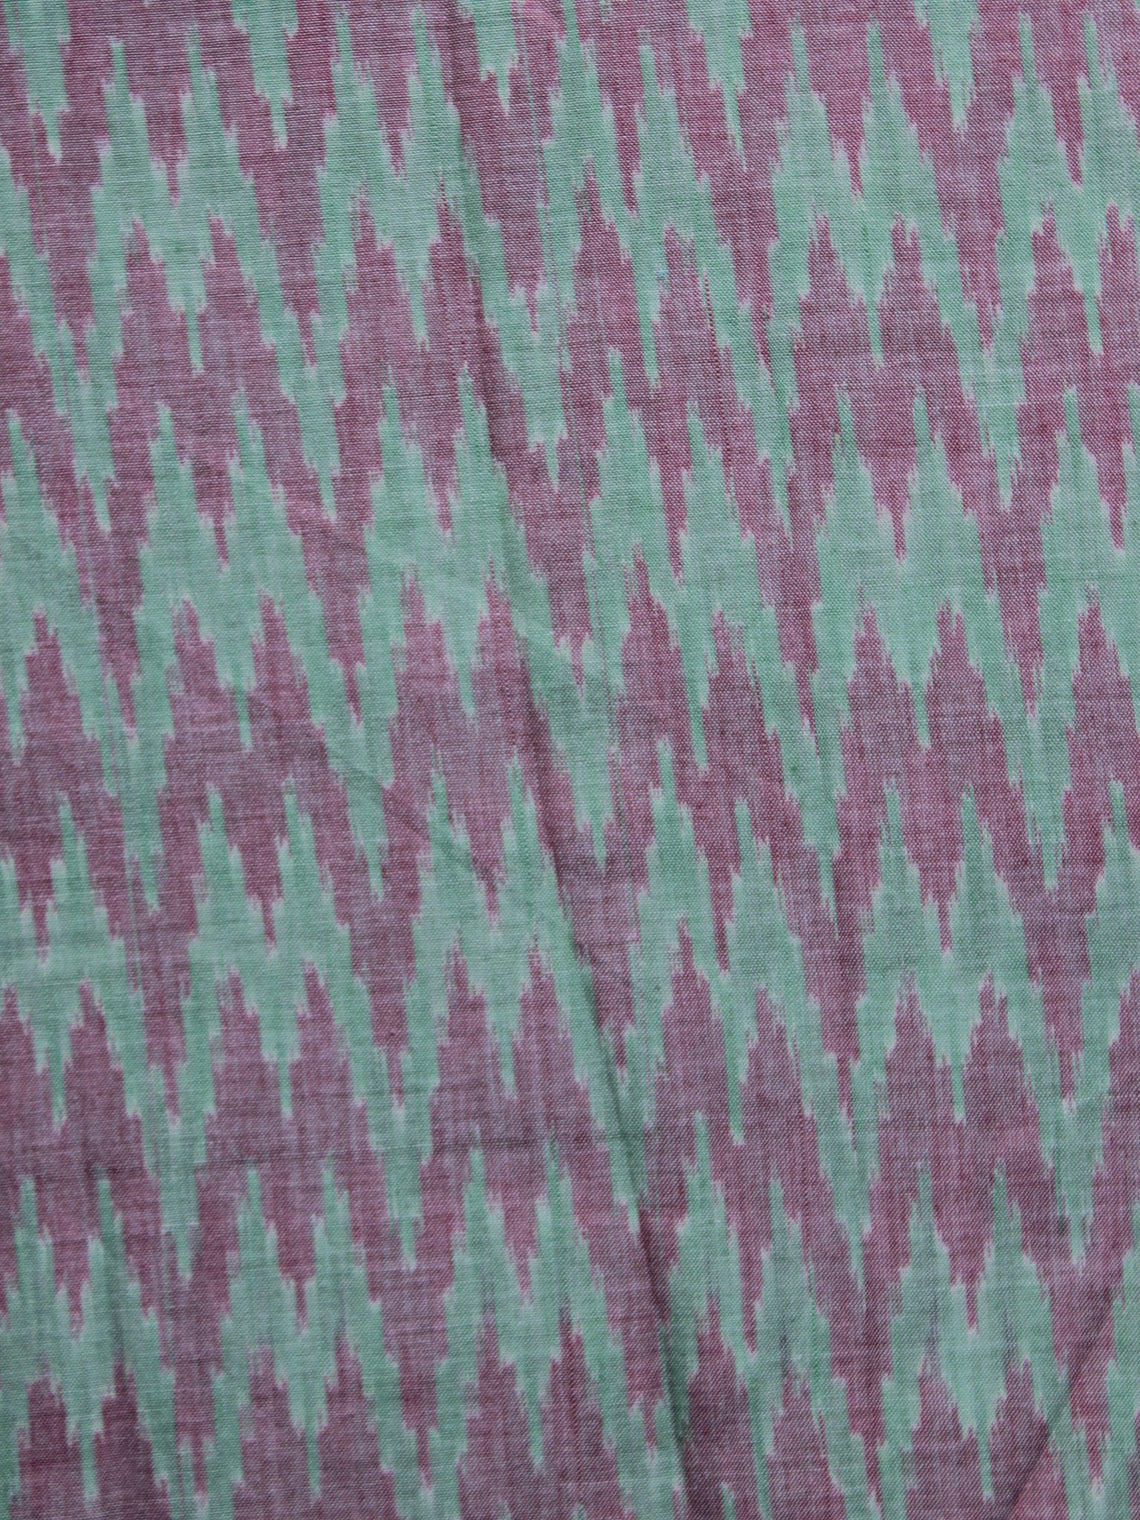 Green Rust Pochampally Hand Weaved Ikat Mercerised Cotton Fabric Per Meter - F002F1033